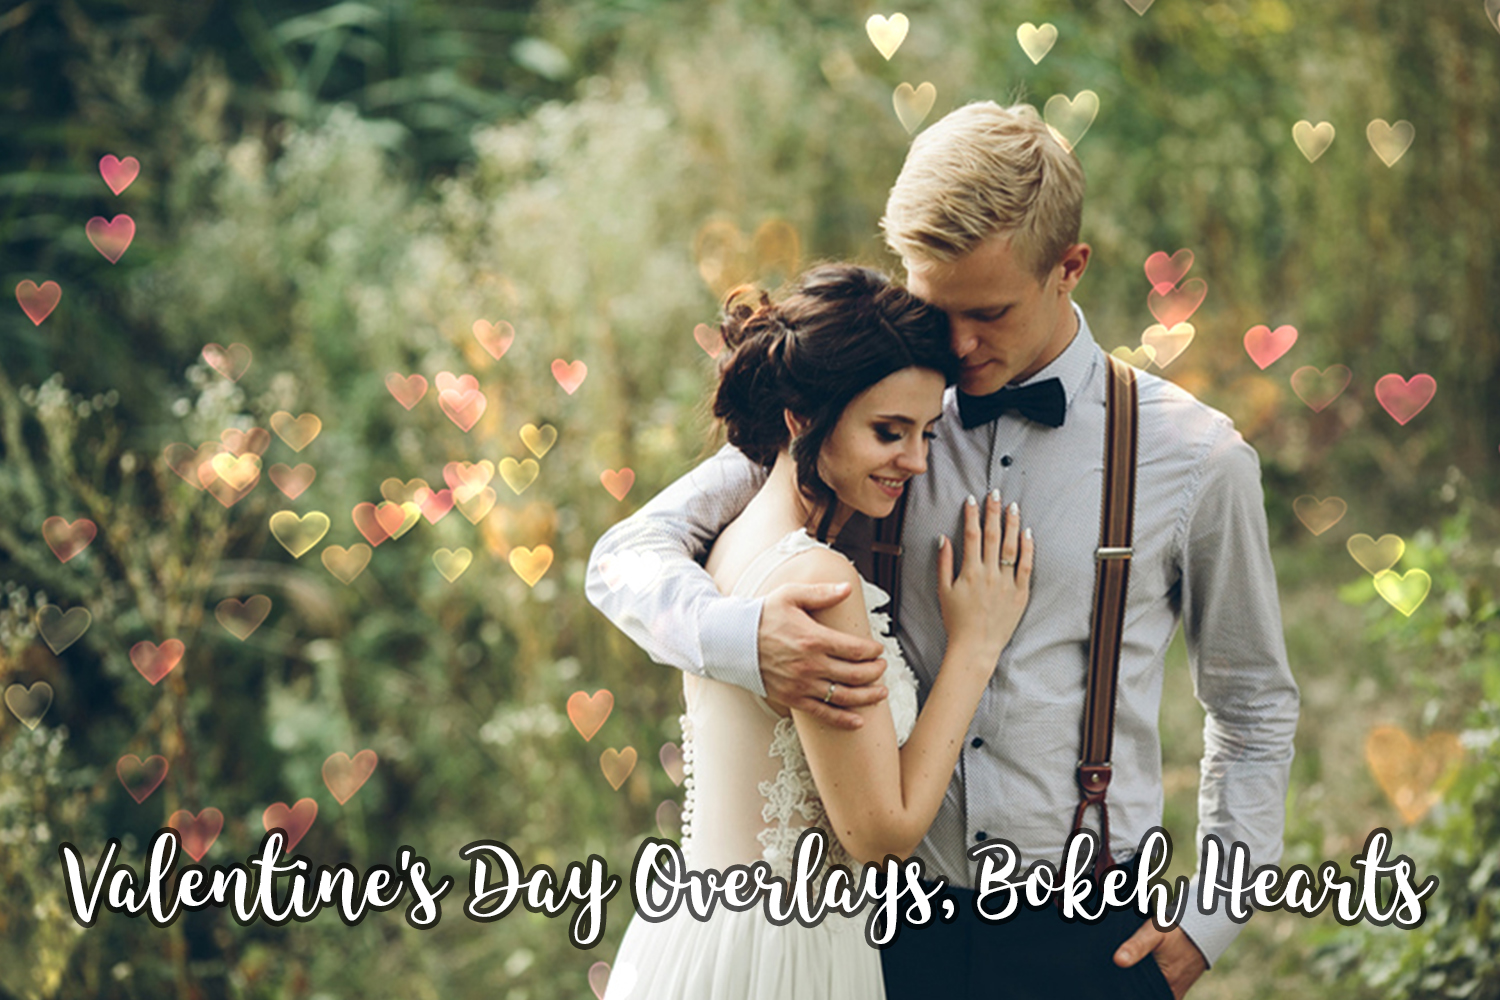 Valentine's Day Overlays, Bokeh Hearts Overlays example image 8